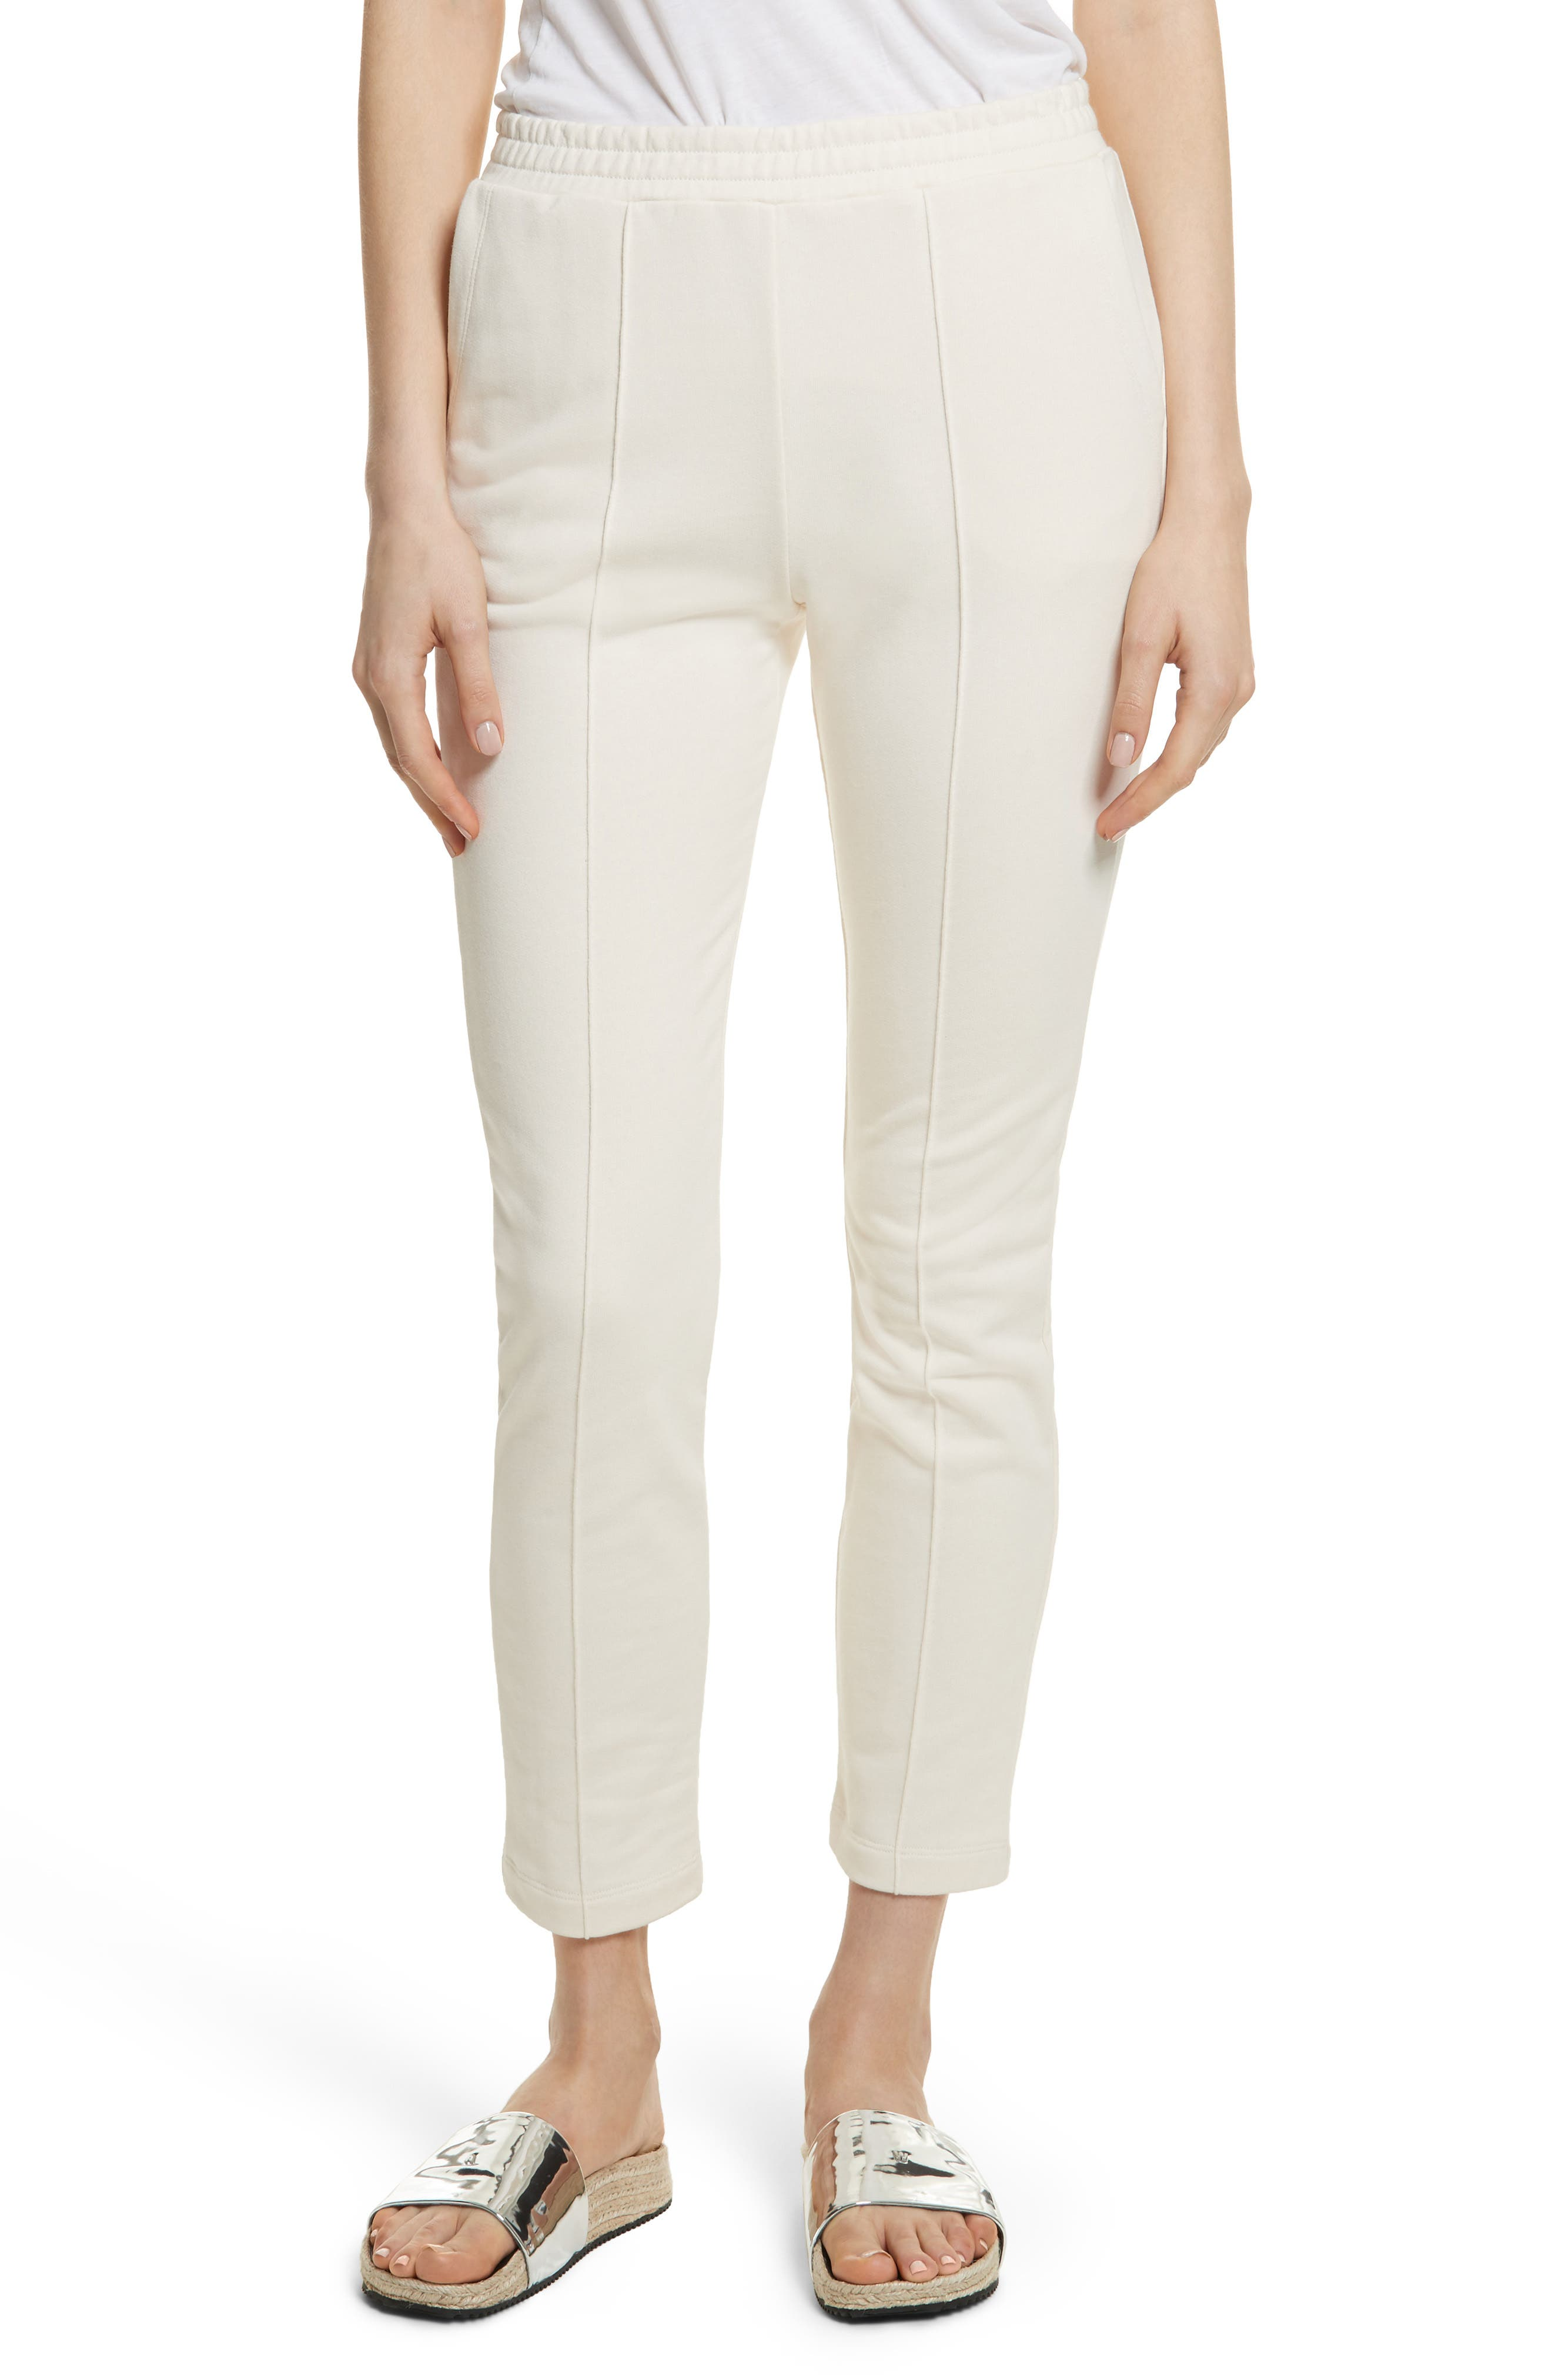 Alternate Image 1 Selected - T by Alexander Wang French Terry Pintuck Pleat Pants